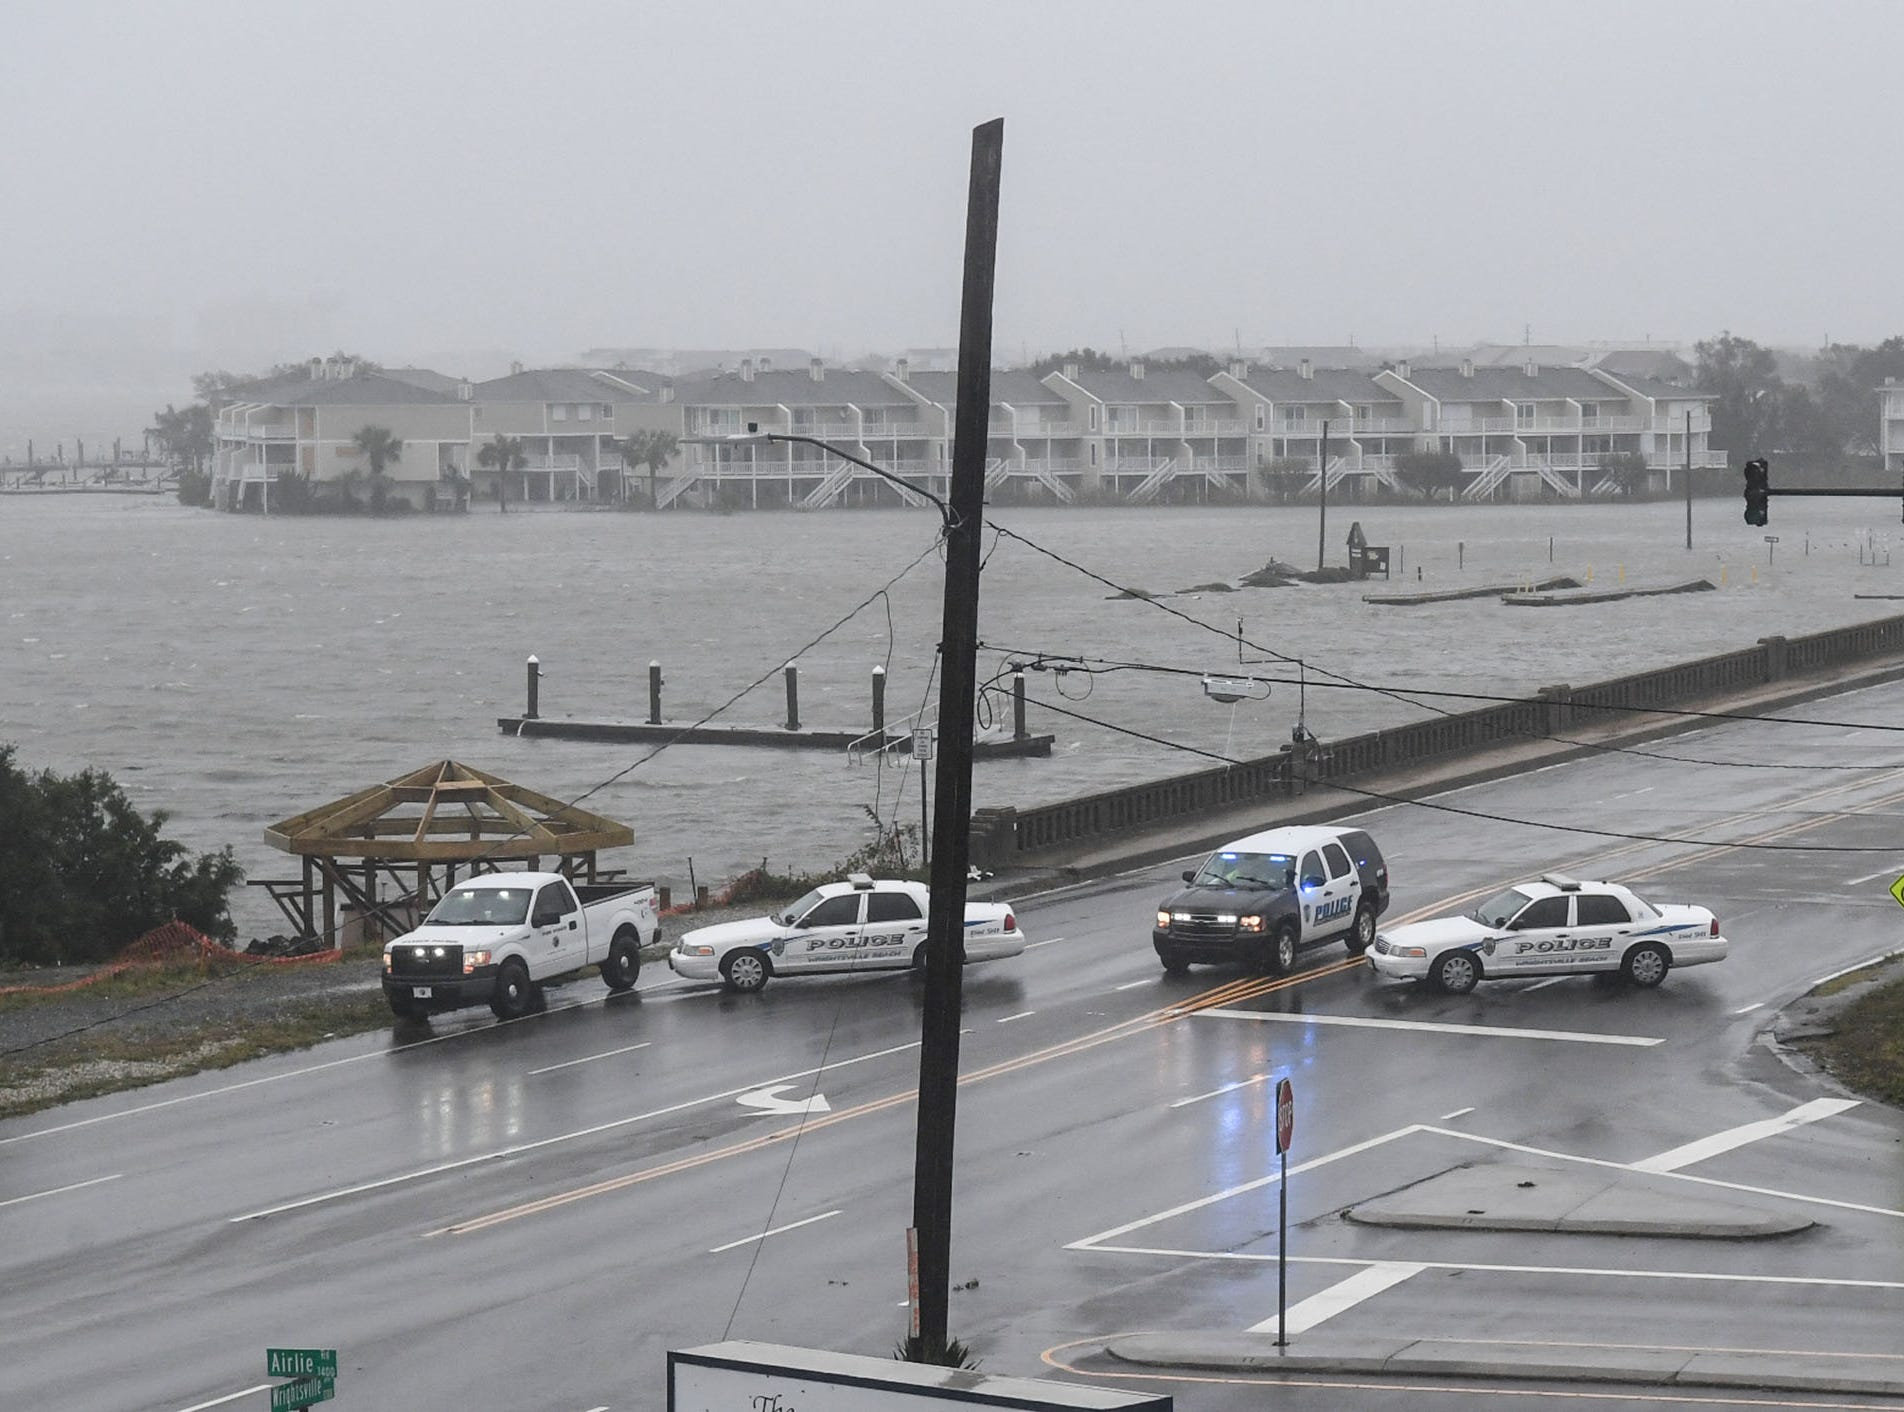 September 14, 2018; Wilmington, NC, USA; Law enforcement block traffic into Wrightsville Beach from Wilmington, North Carolina on Friday as Hurricane Florence passes through on Friday, September 14, 2018.